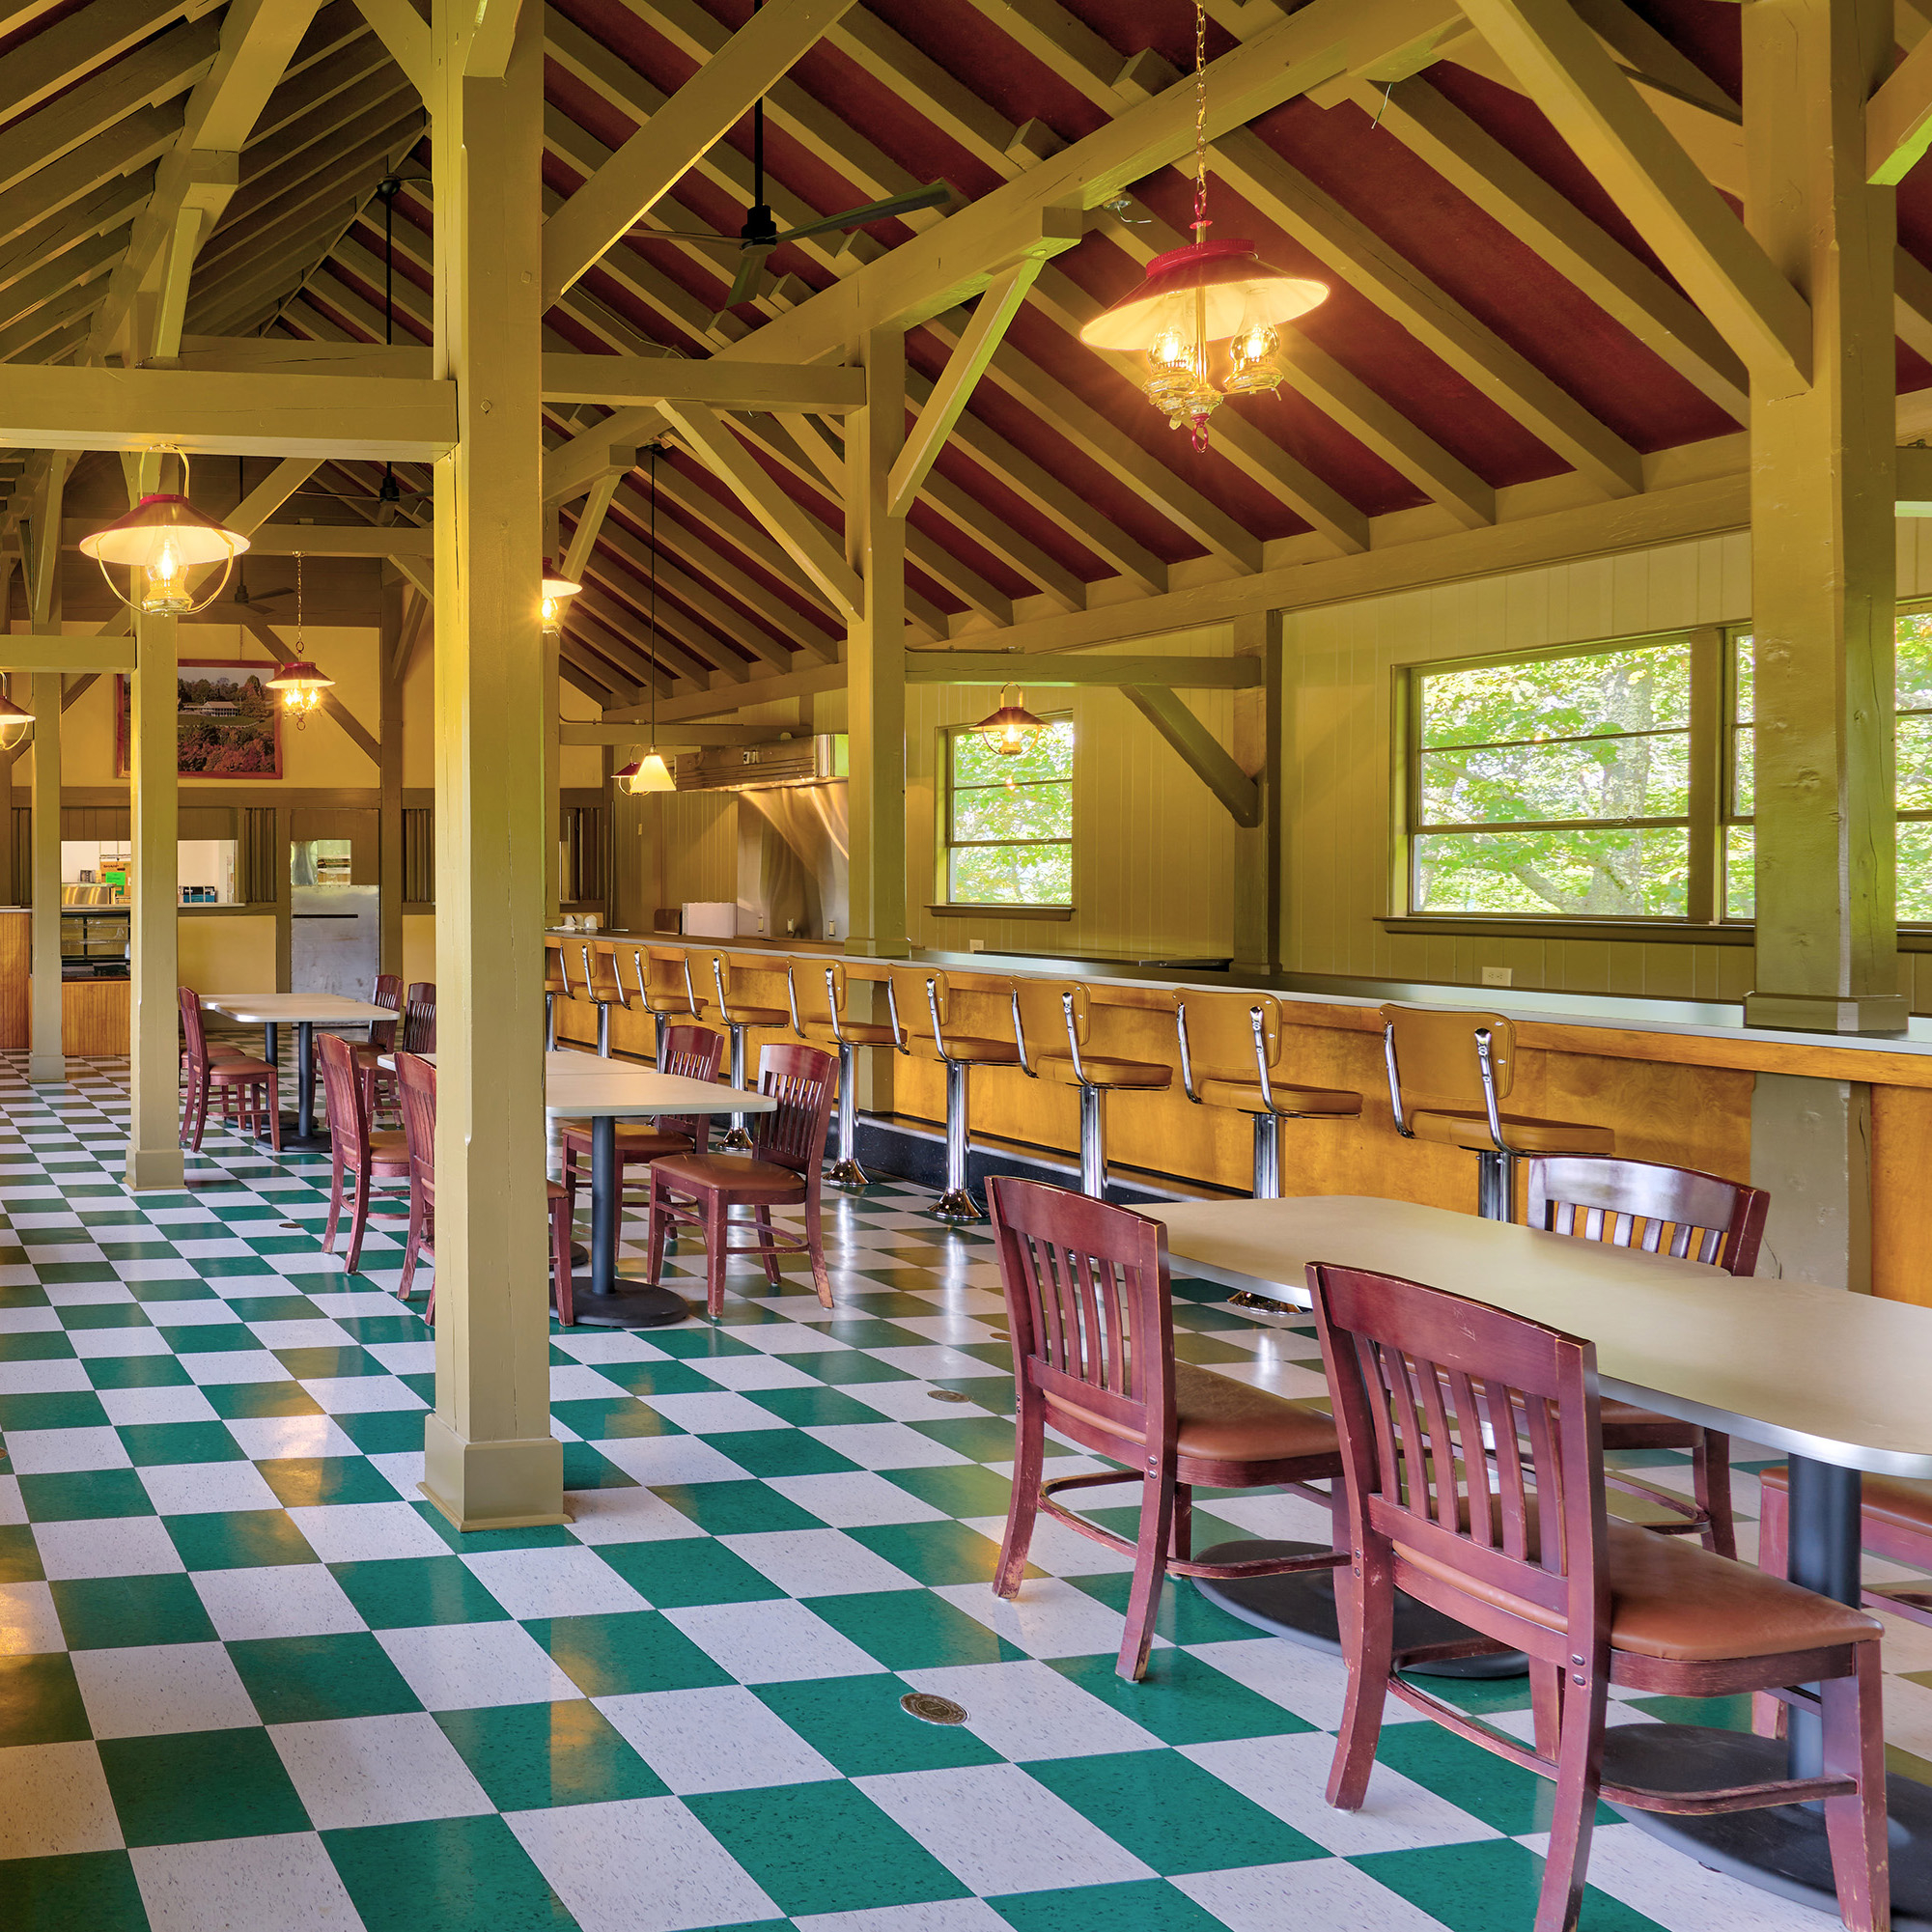 Bluffs Restaurant Blue Ridge Parkway by David Huff